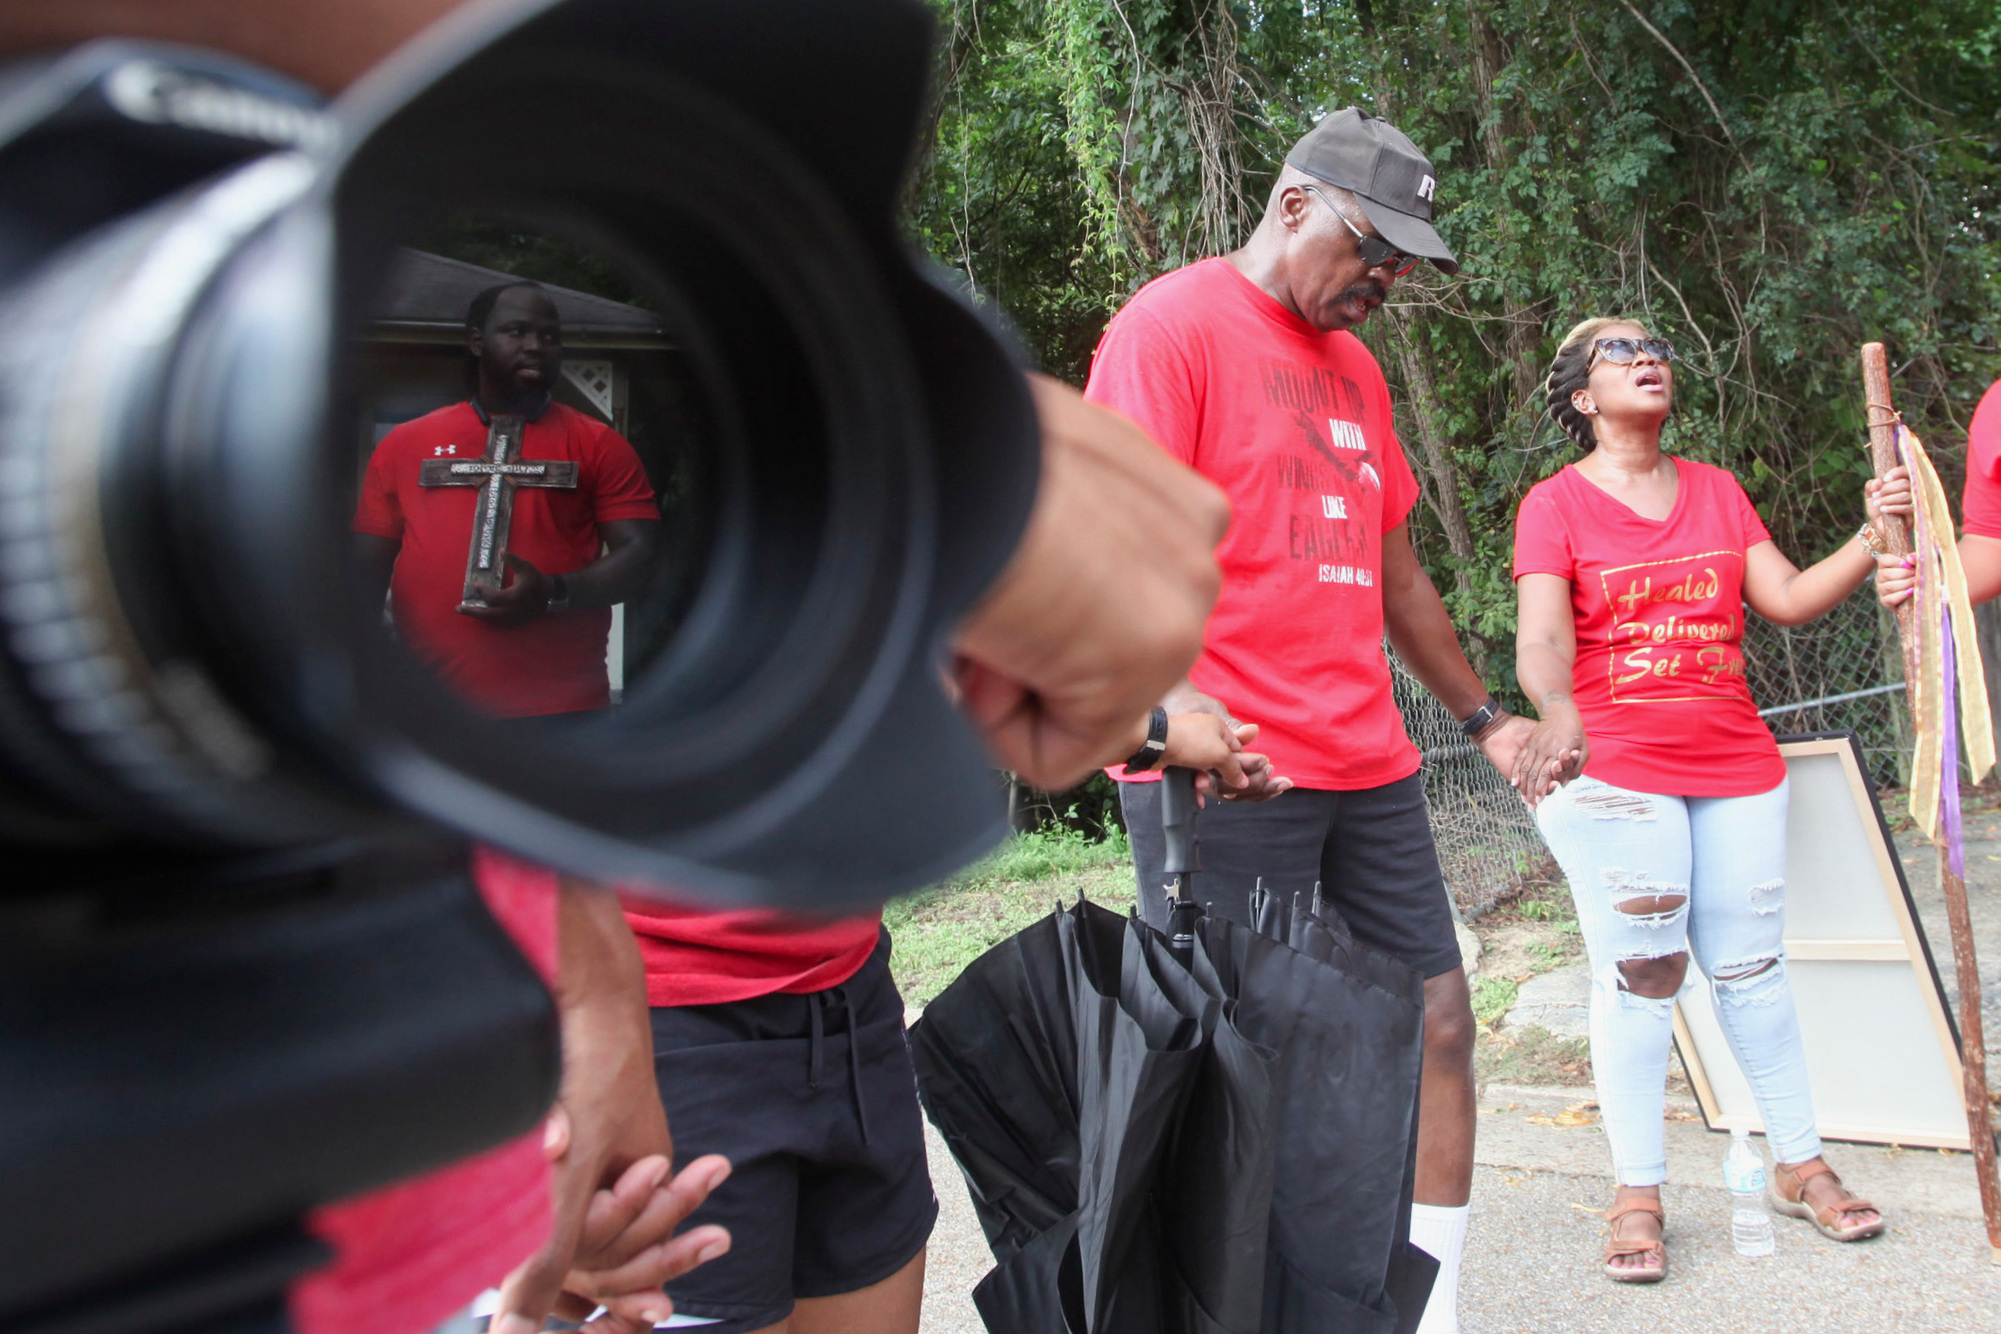 Lamont Rogers is reflected in the lens of a camera as he holds a cross during prayer at the intersection of Lane and Togo street in the Unity Prayer Walk in Marcus Bottom Saturday. Parishioners walked, prayed and sang their way to a gathering at the Ken Karyl playground.  (Courtland Wells/The Vicksburg Post)